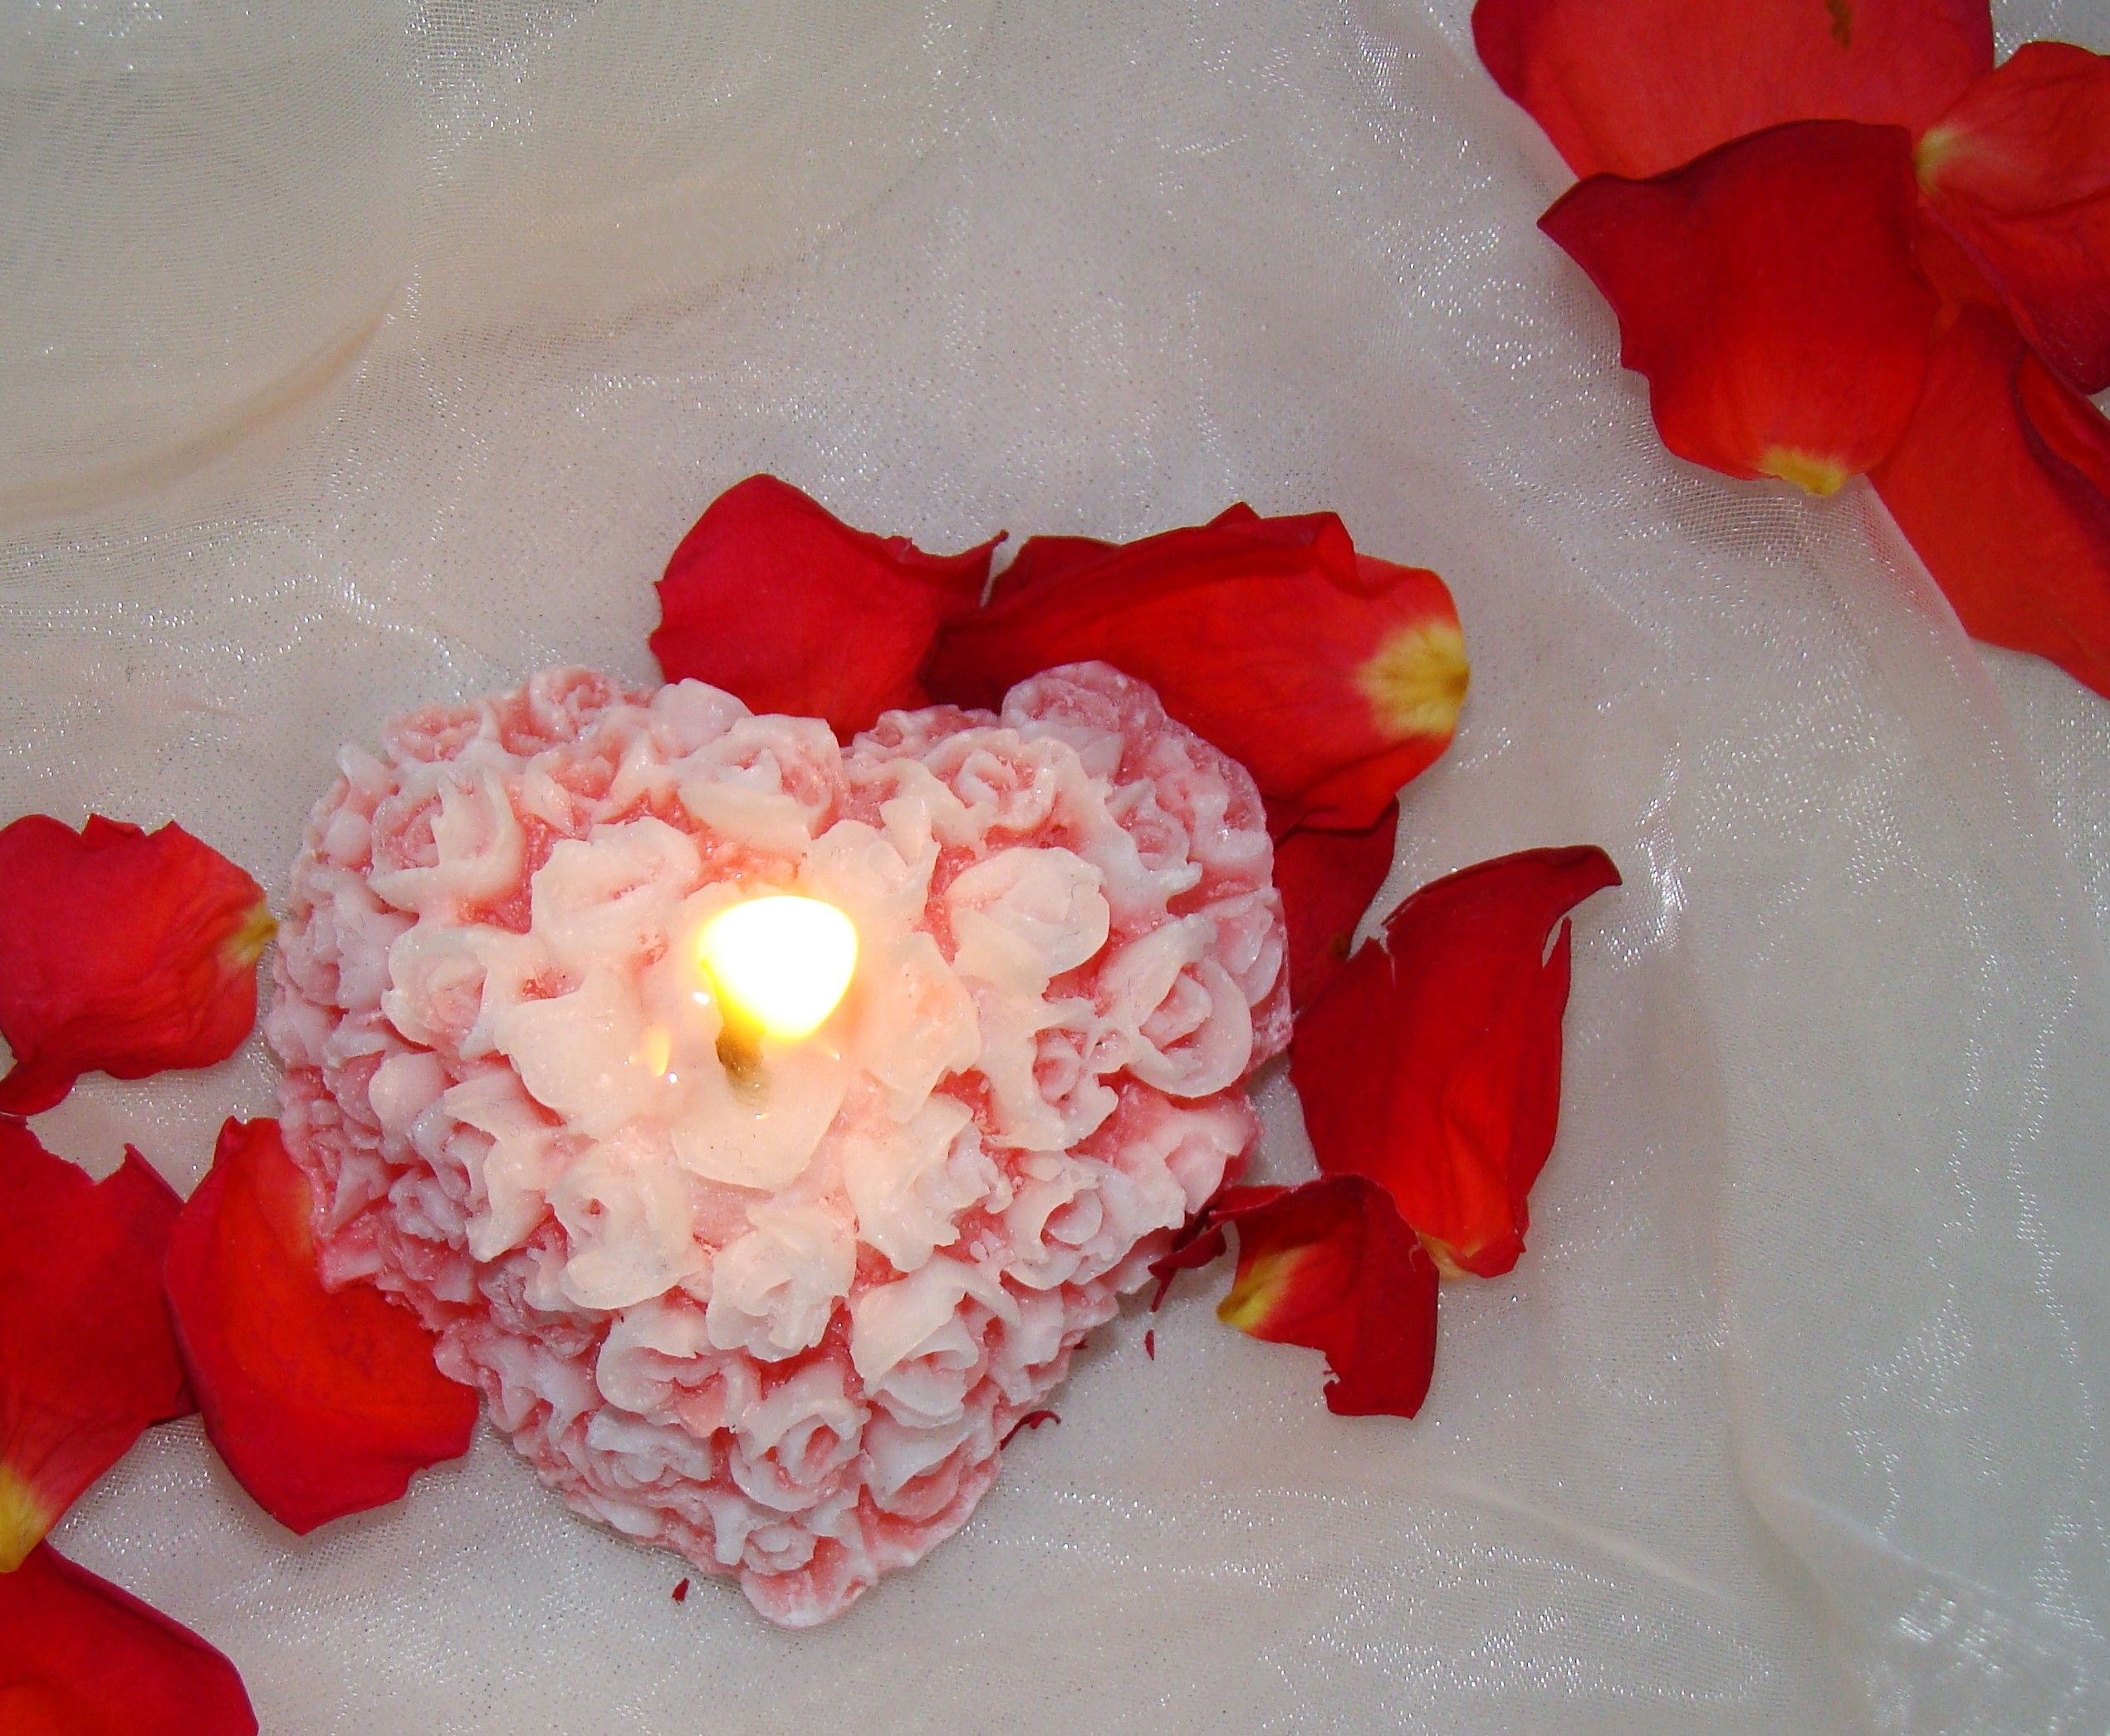 So Cute Aucess Valentines Day Ornament Strawberry Heart-Shaped Rose Scented Candle for Lover